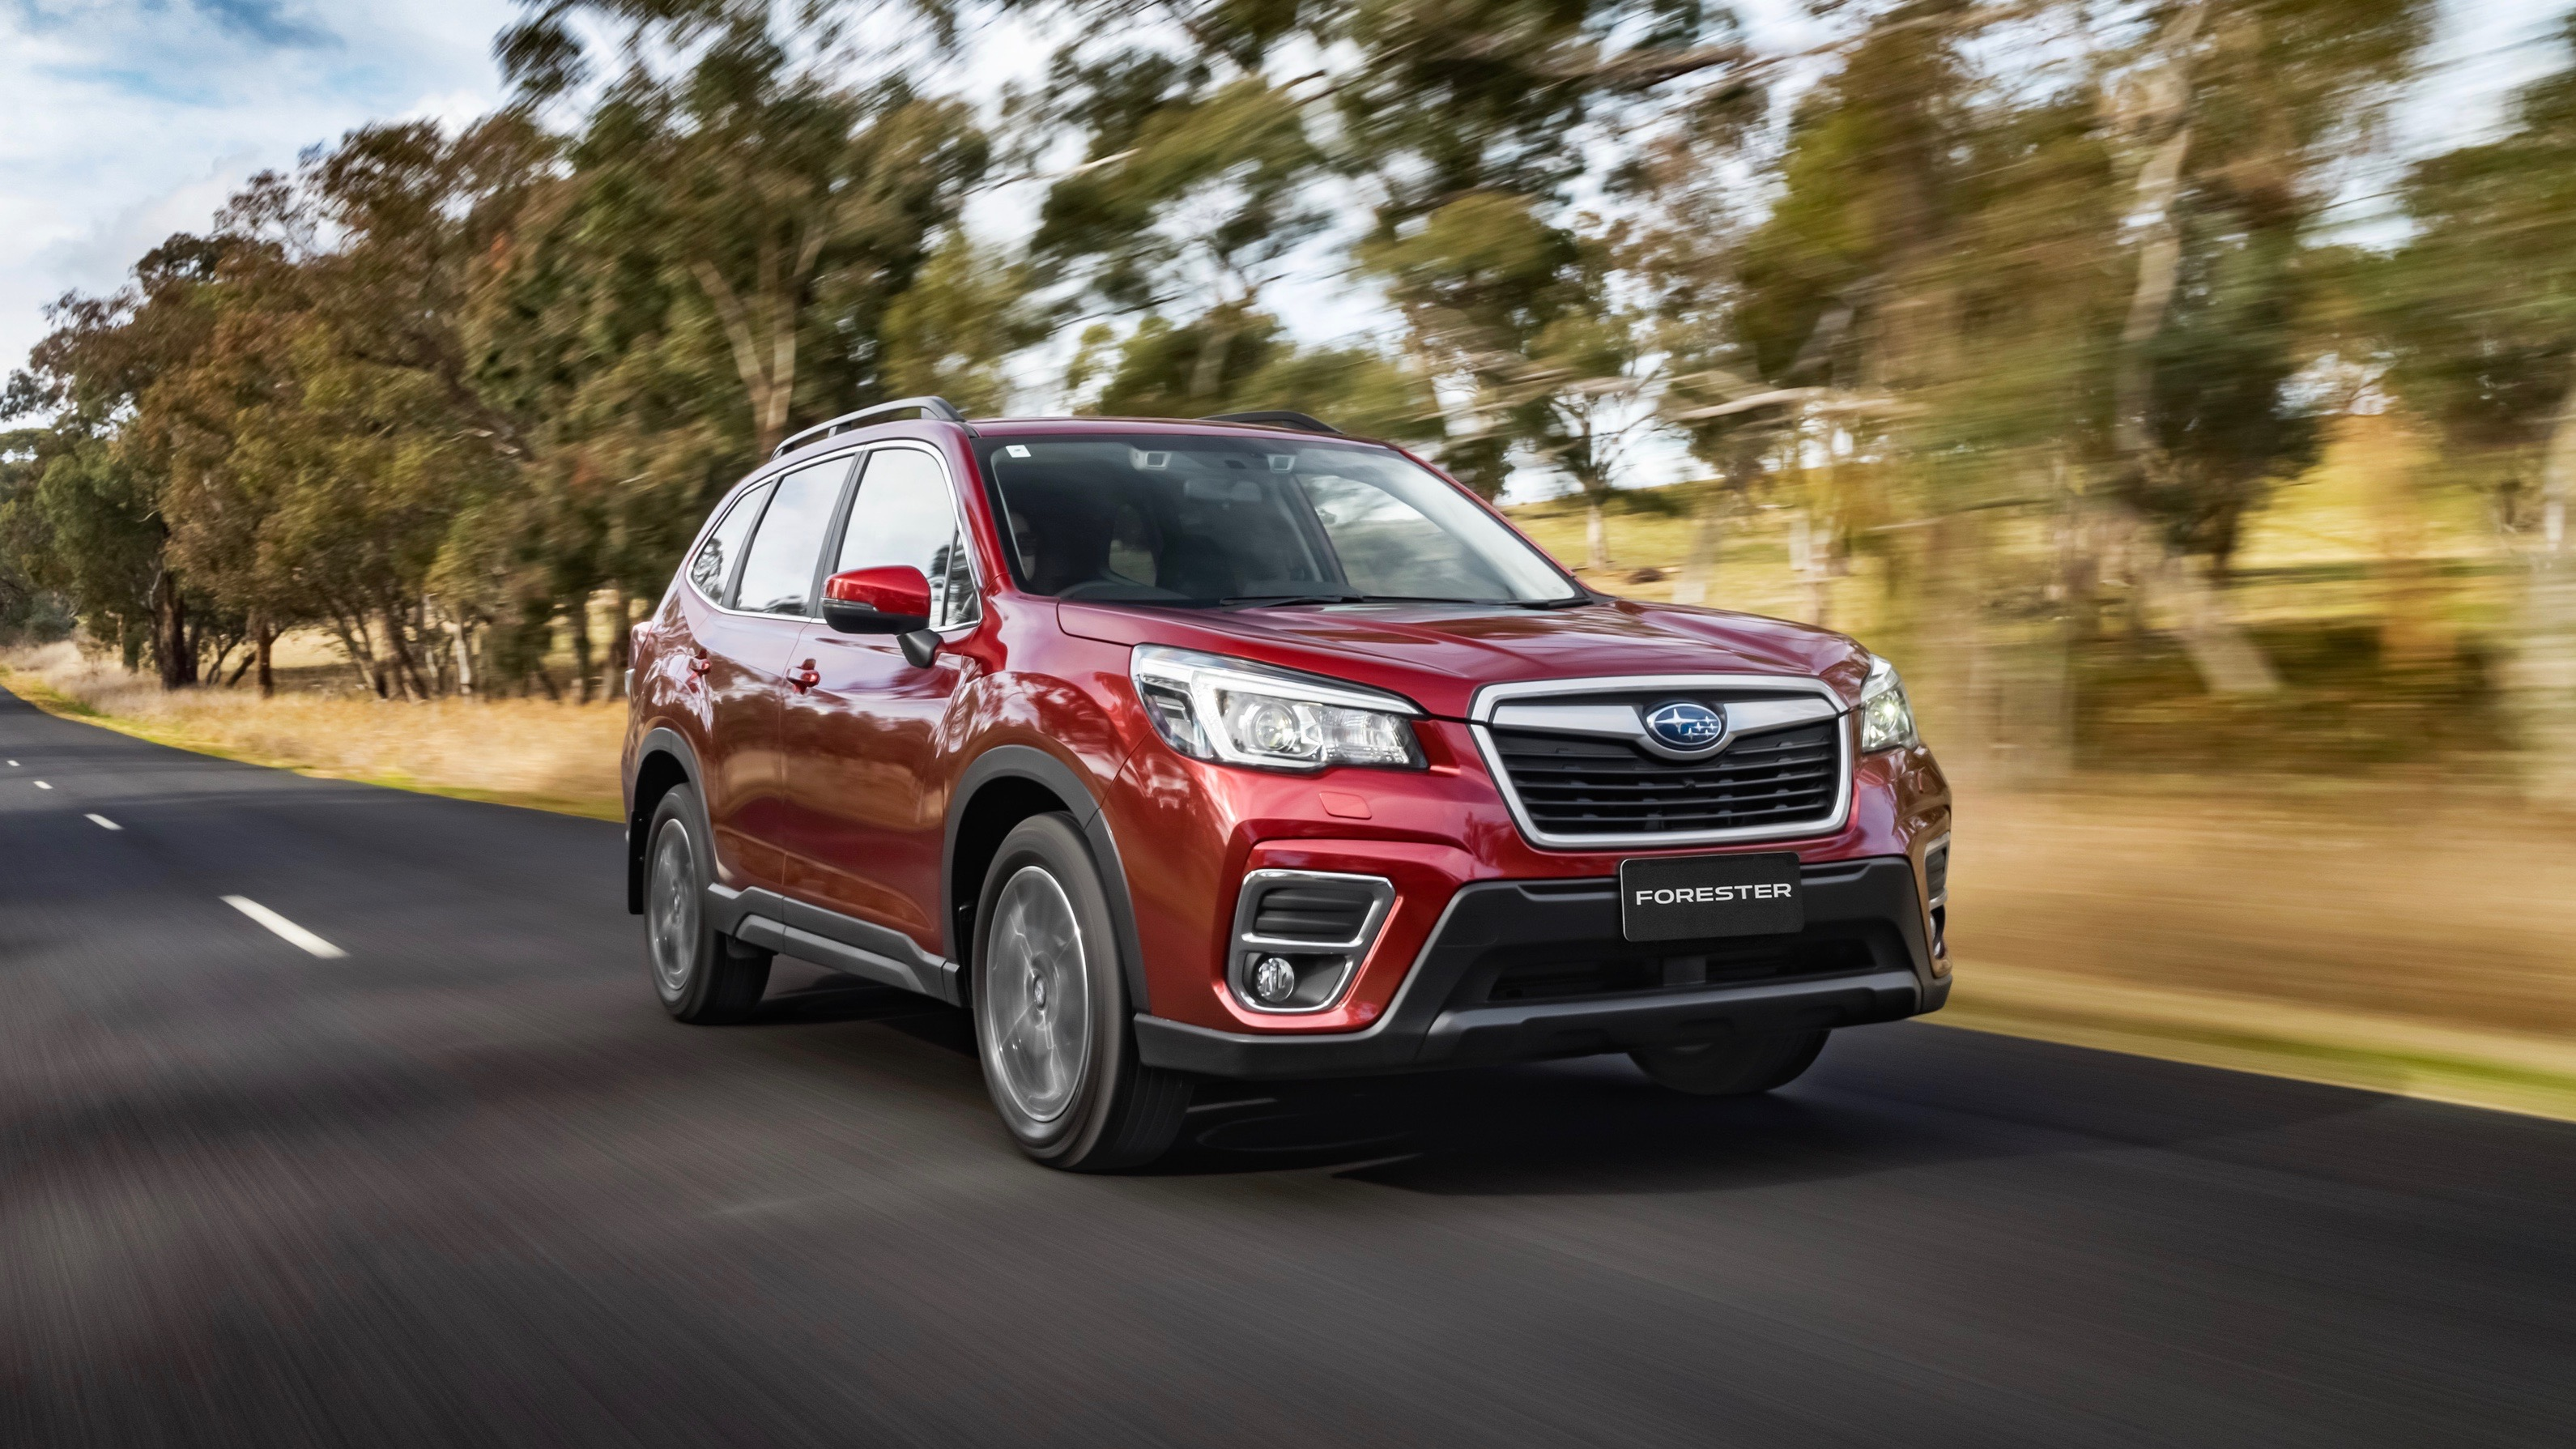 2019 Subaru Forester 2.5i-Premium red front 3/4 moving